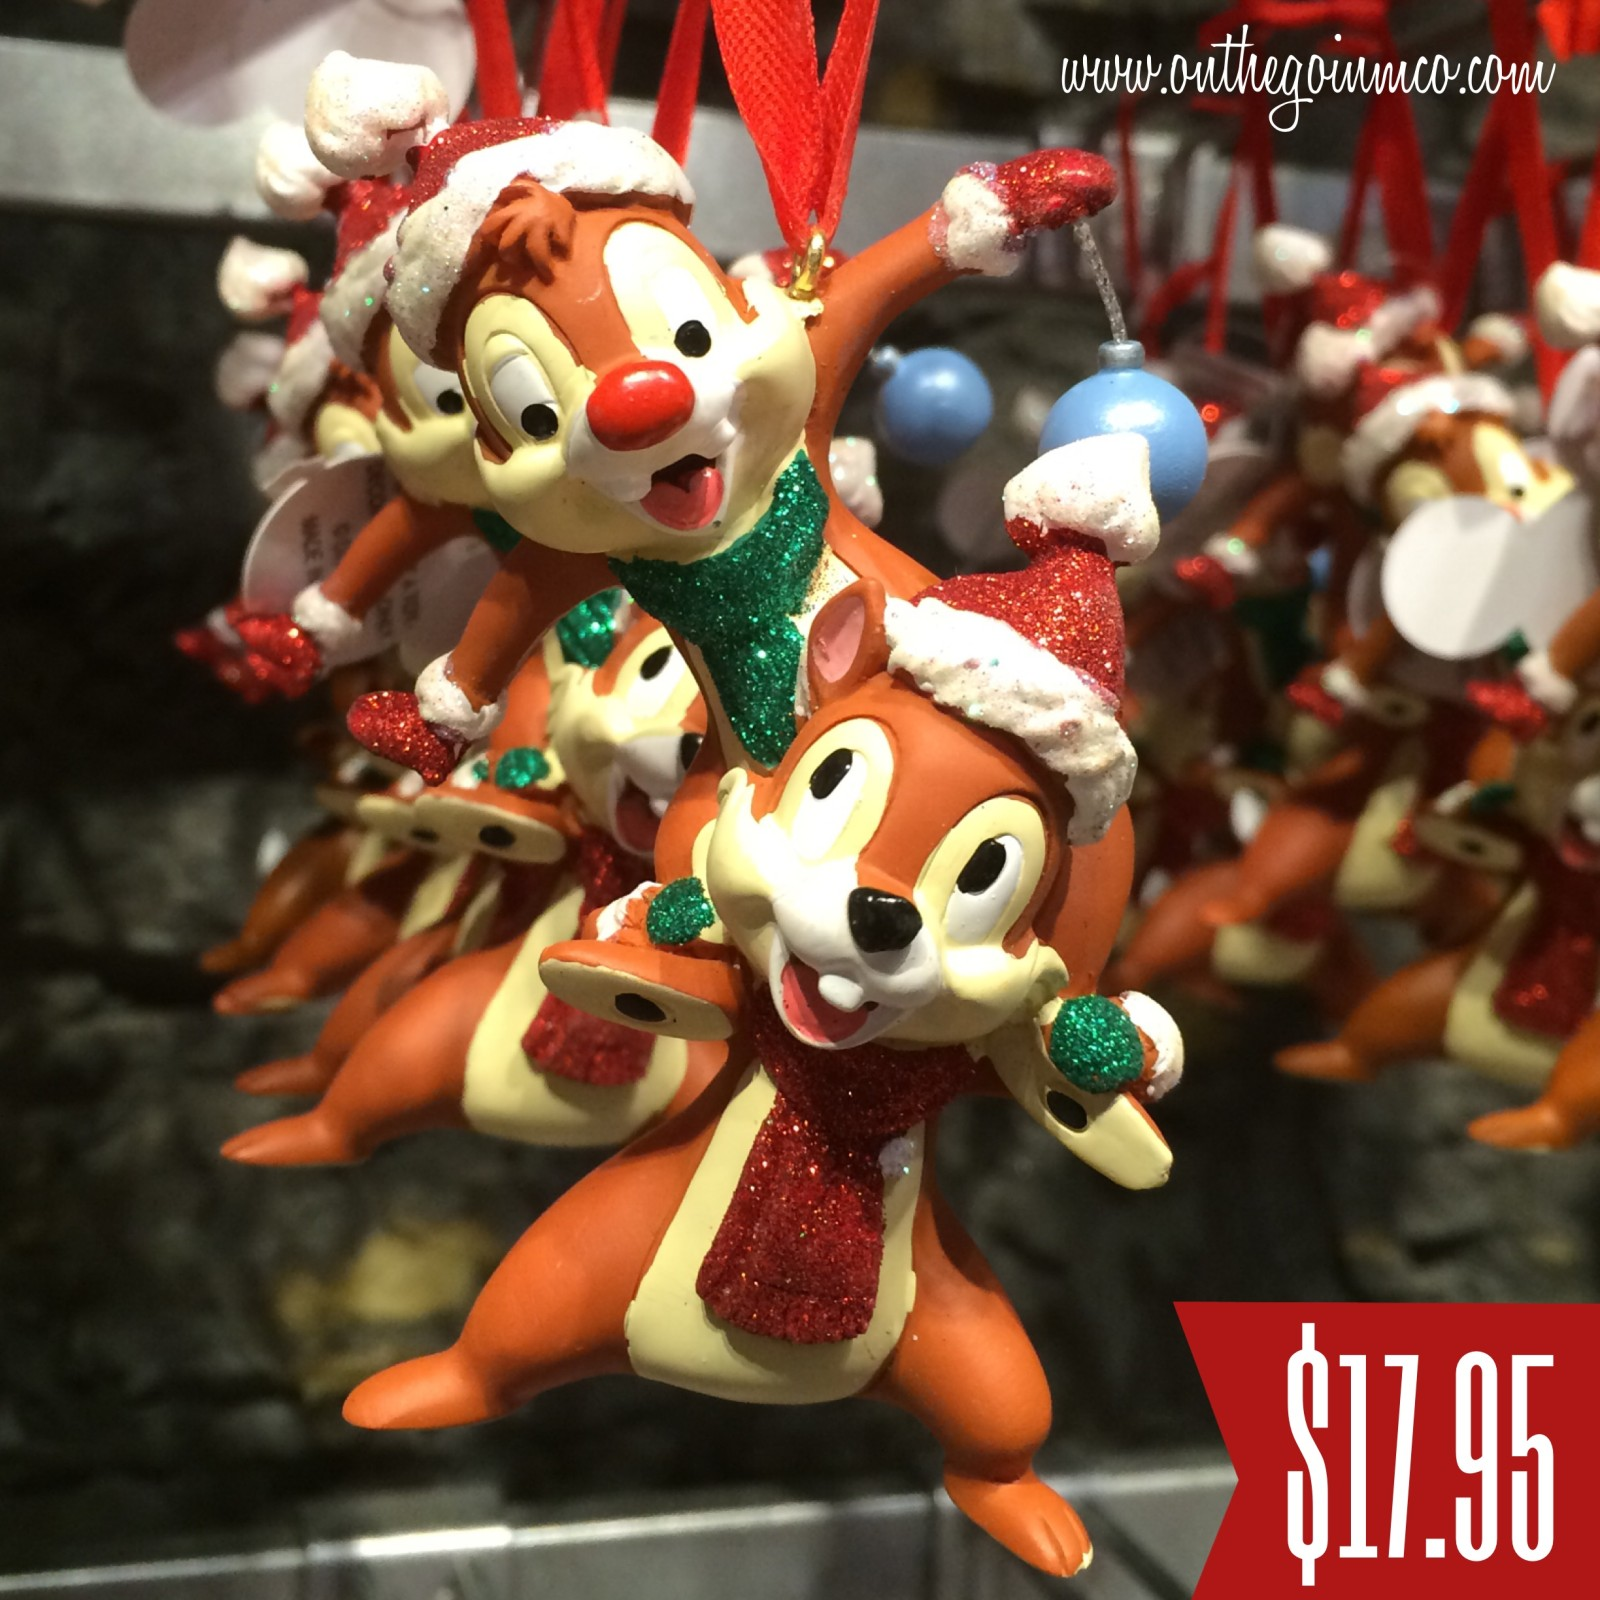 Walt Disney World Christmas Ornaments - Chip and Dale